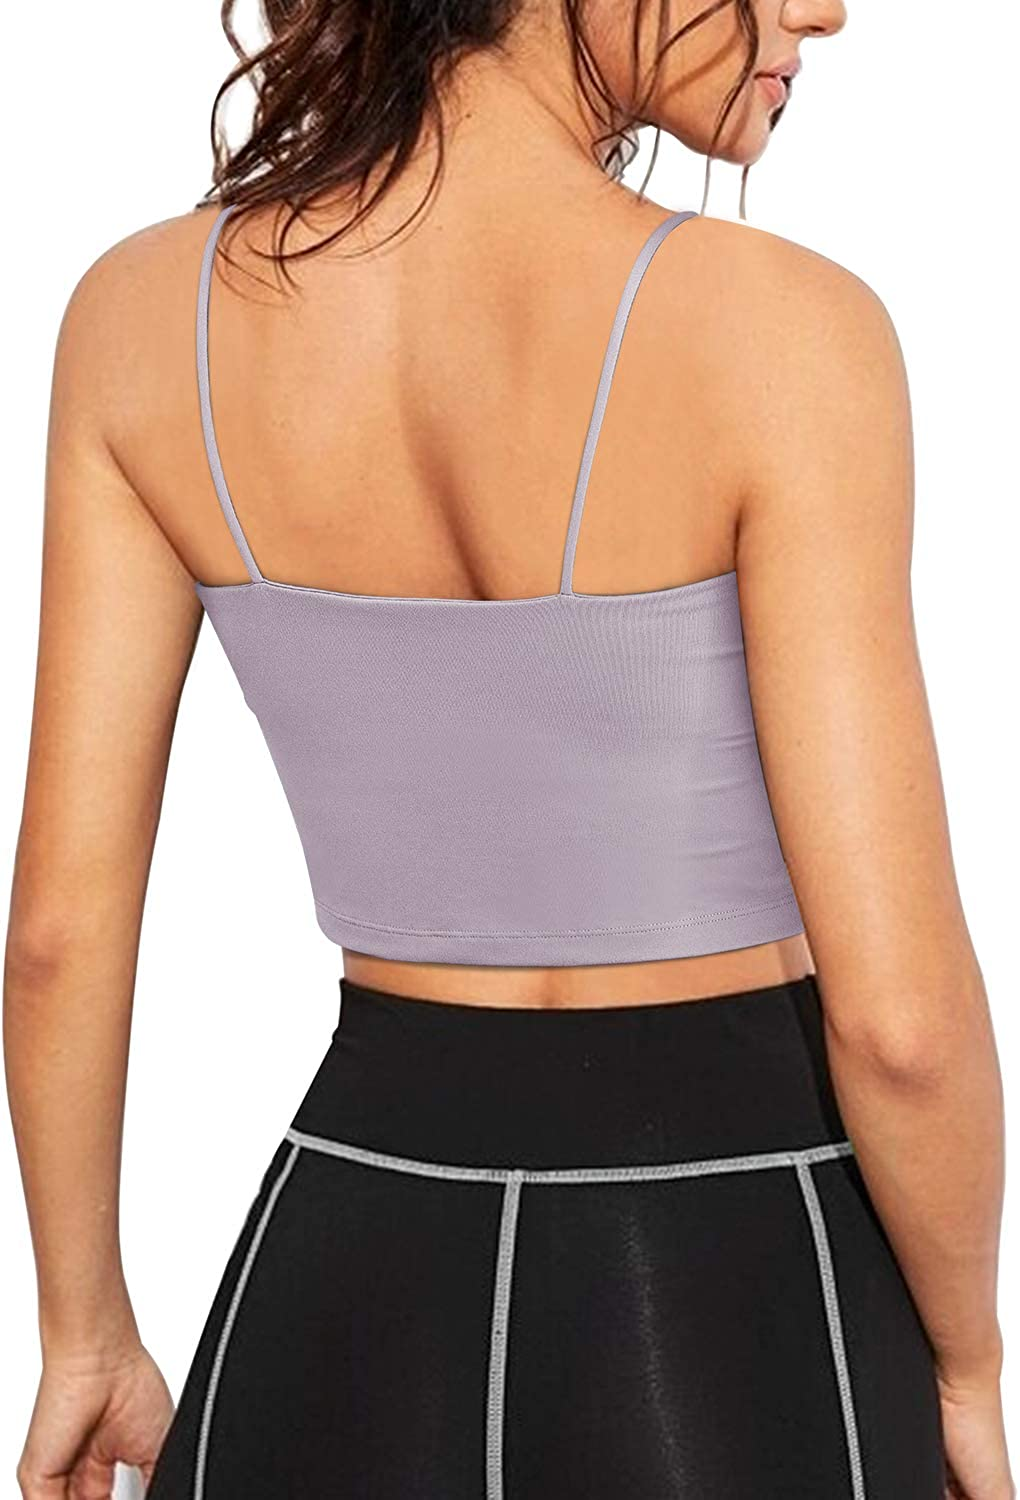 Promover Padded Sports Bra Strappy Crop Tops with Built-in Bra Workout Running Longline Yoga Bralette